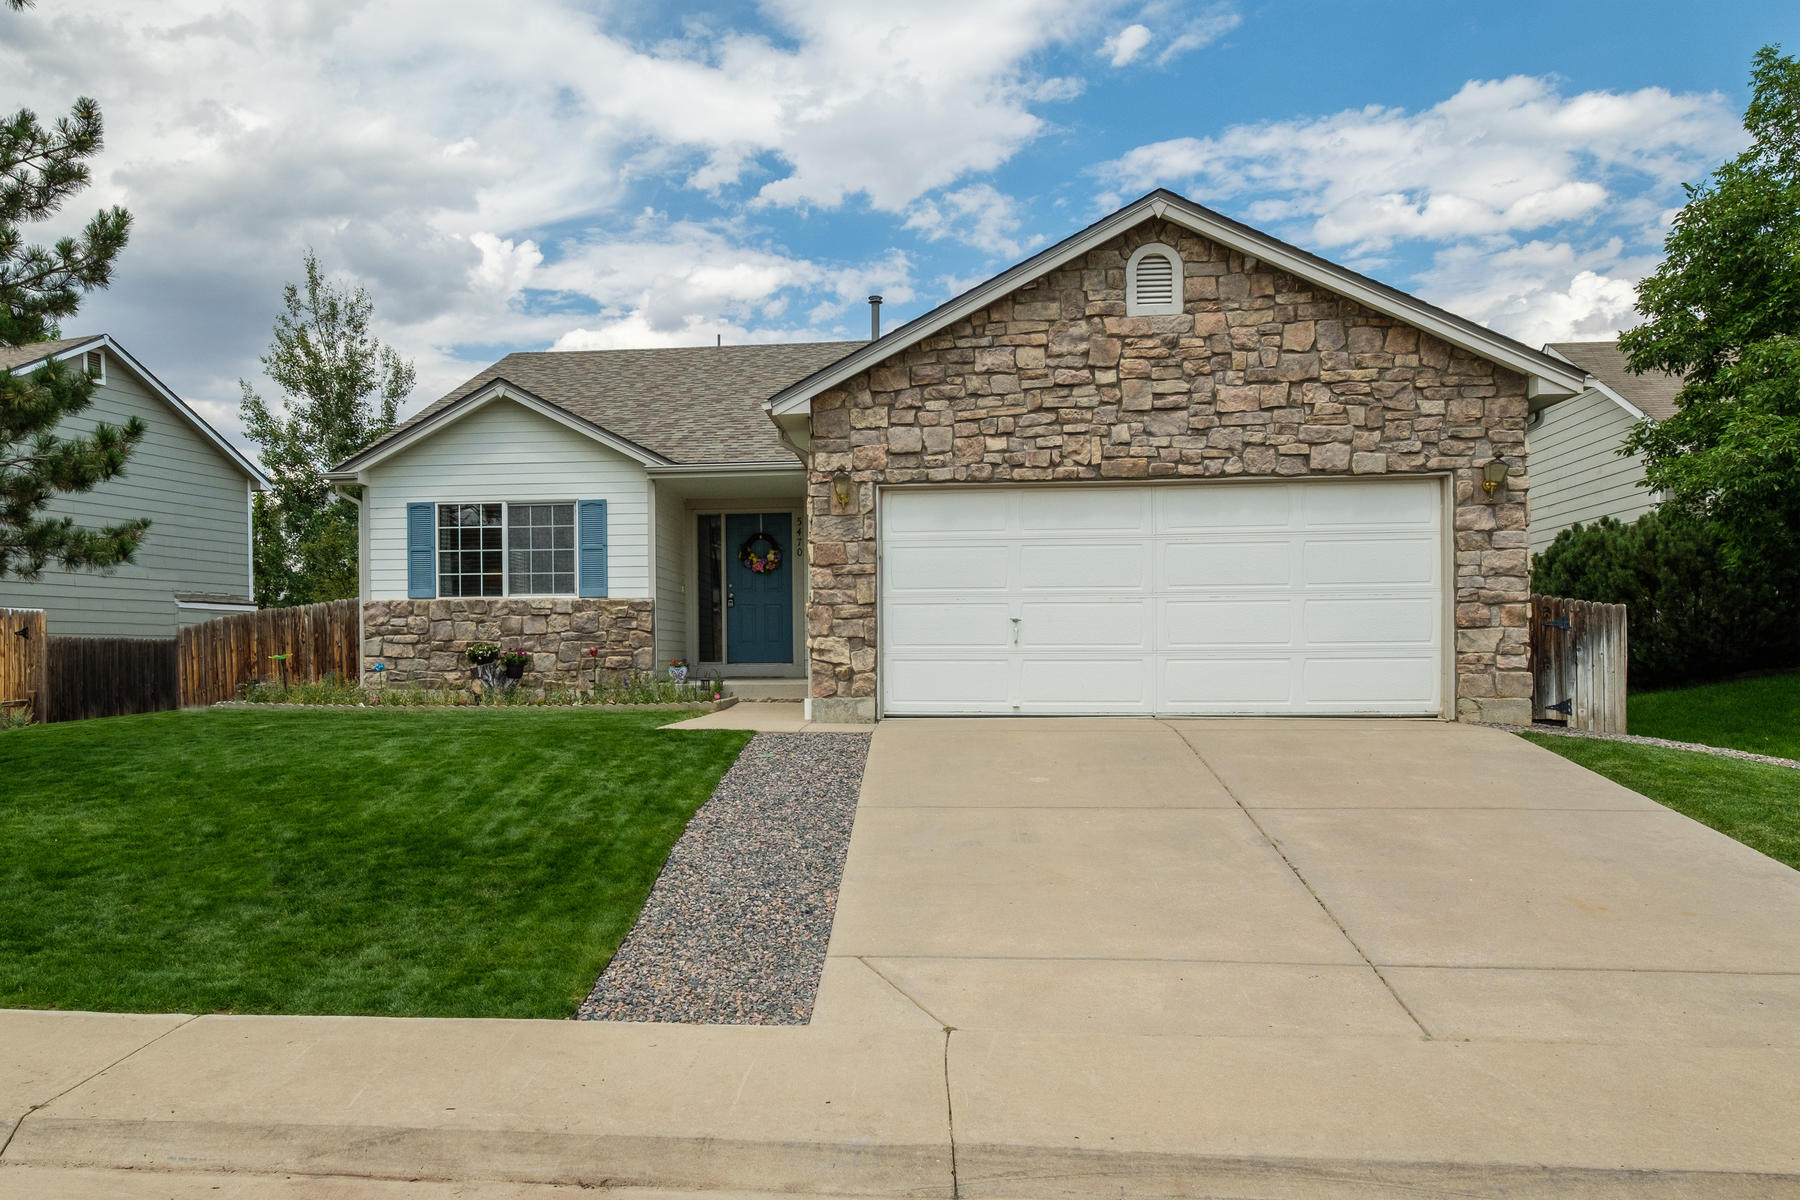 Single Family Home for Active at Welcome home to this wonderful three bedroom ranch style home 5470 S Nepal Ct Centennial, Colorado 80015 United States